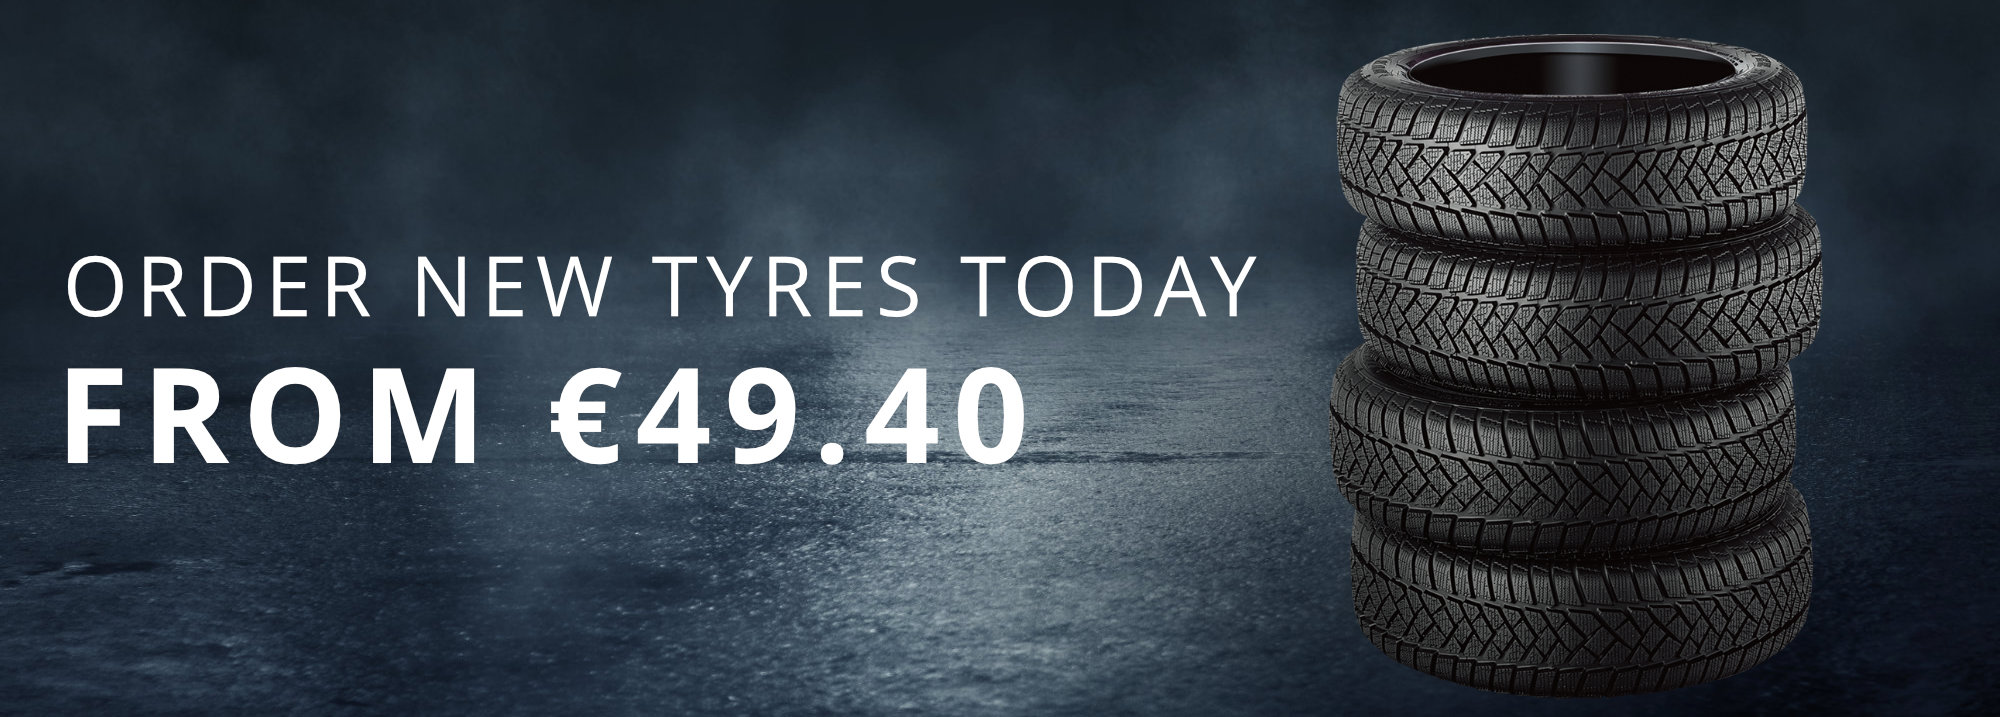 Order New Tyres from €49.40 from Gowan Motors